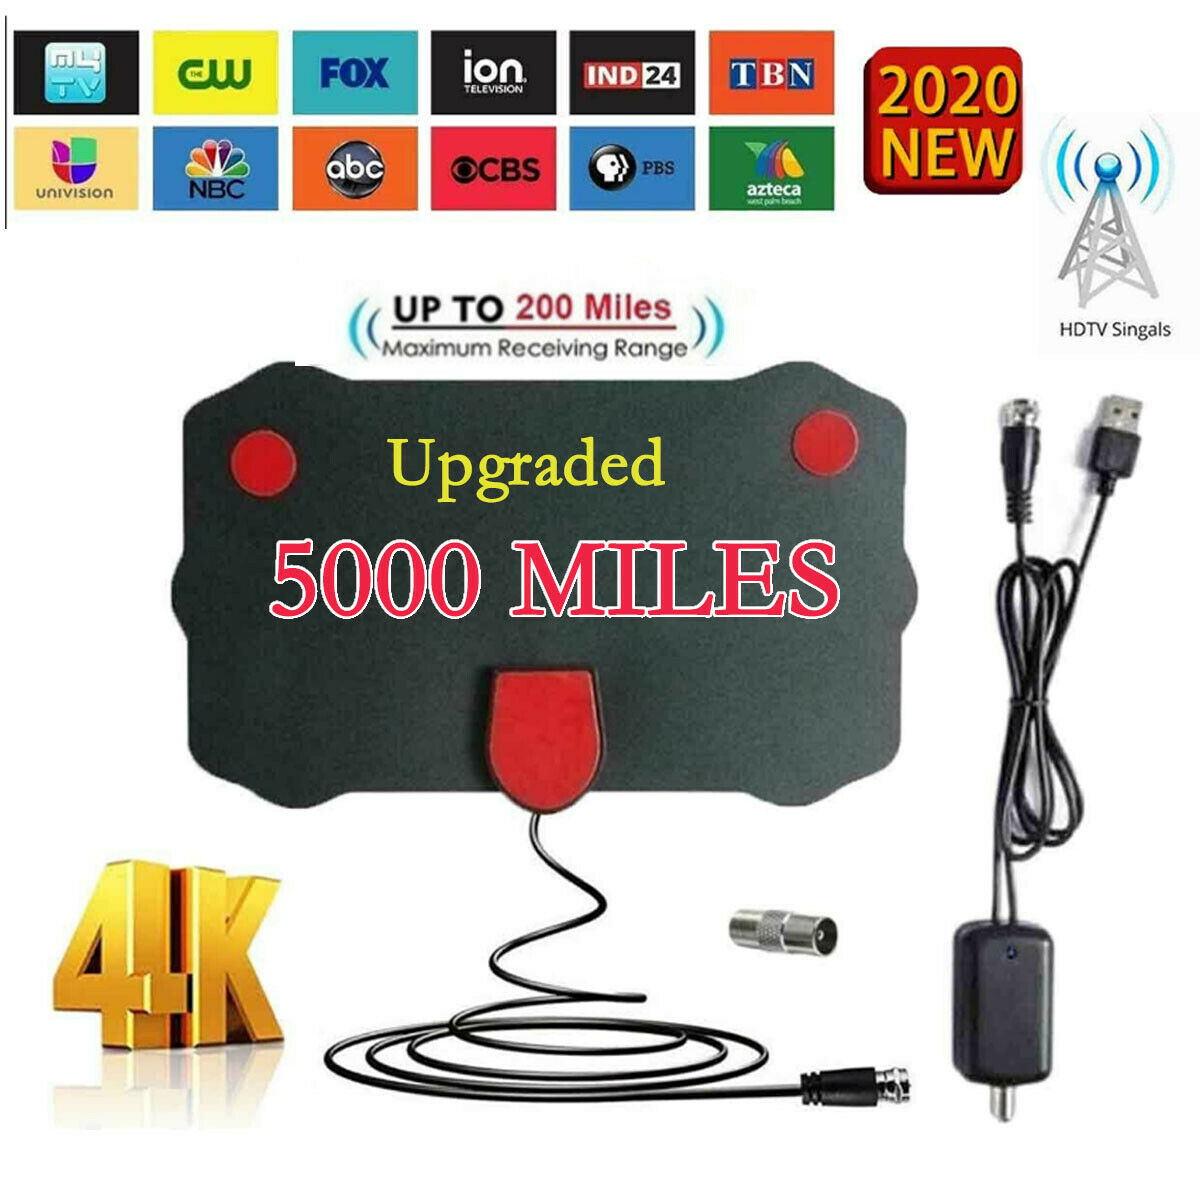 3600 Mile Aerial Signal Amplifier Range HDTV Antenna 4K HD Indoor Digital TV USA. Available Now for 7.50